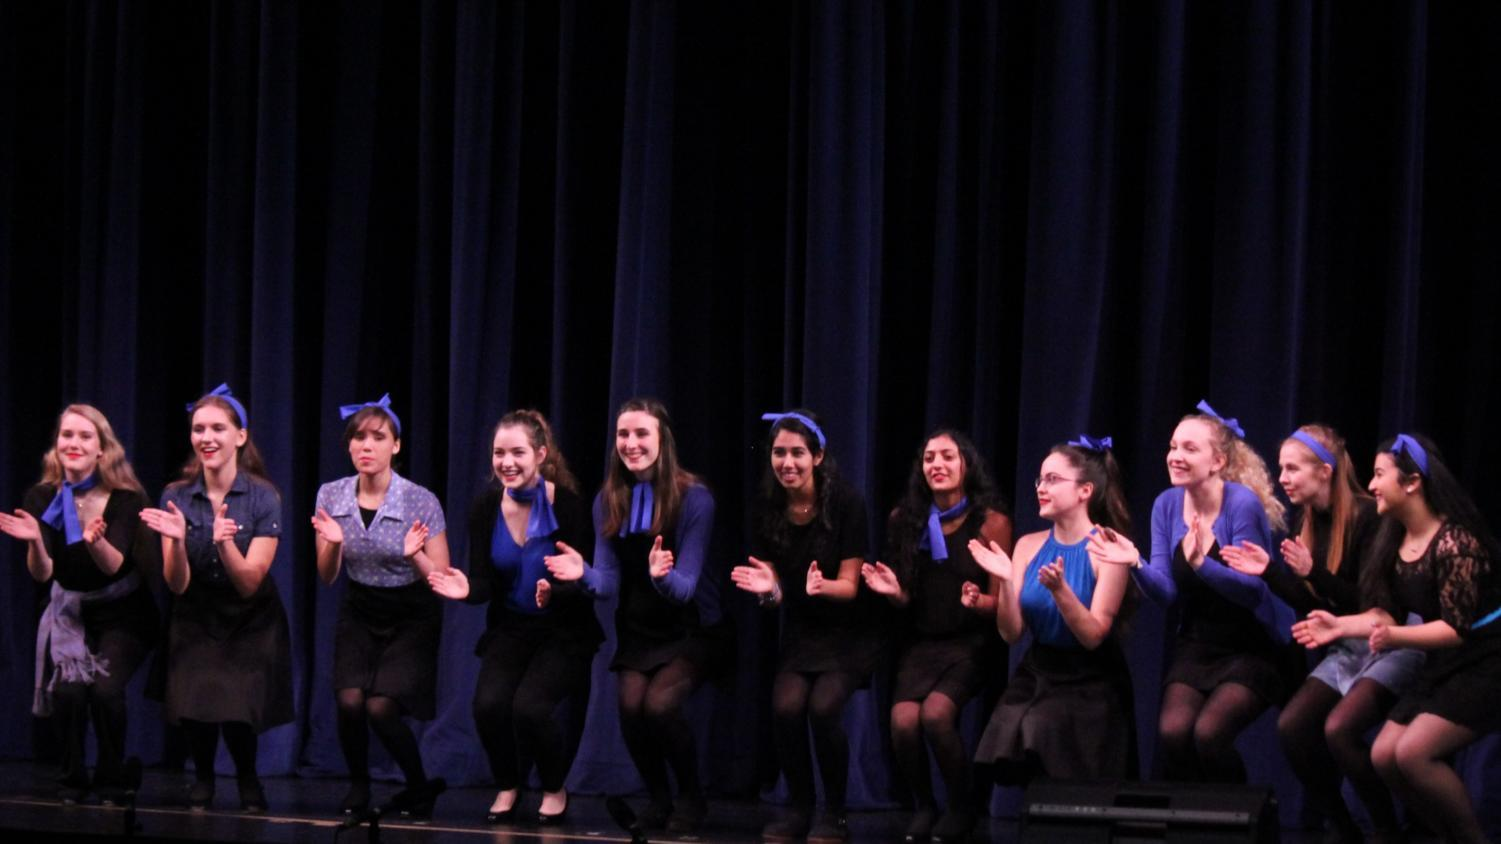 Choir+group+Out+of+the+Blue+performs+%22The+Best+of+Doo+Wop.%22